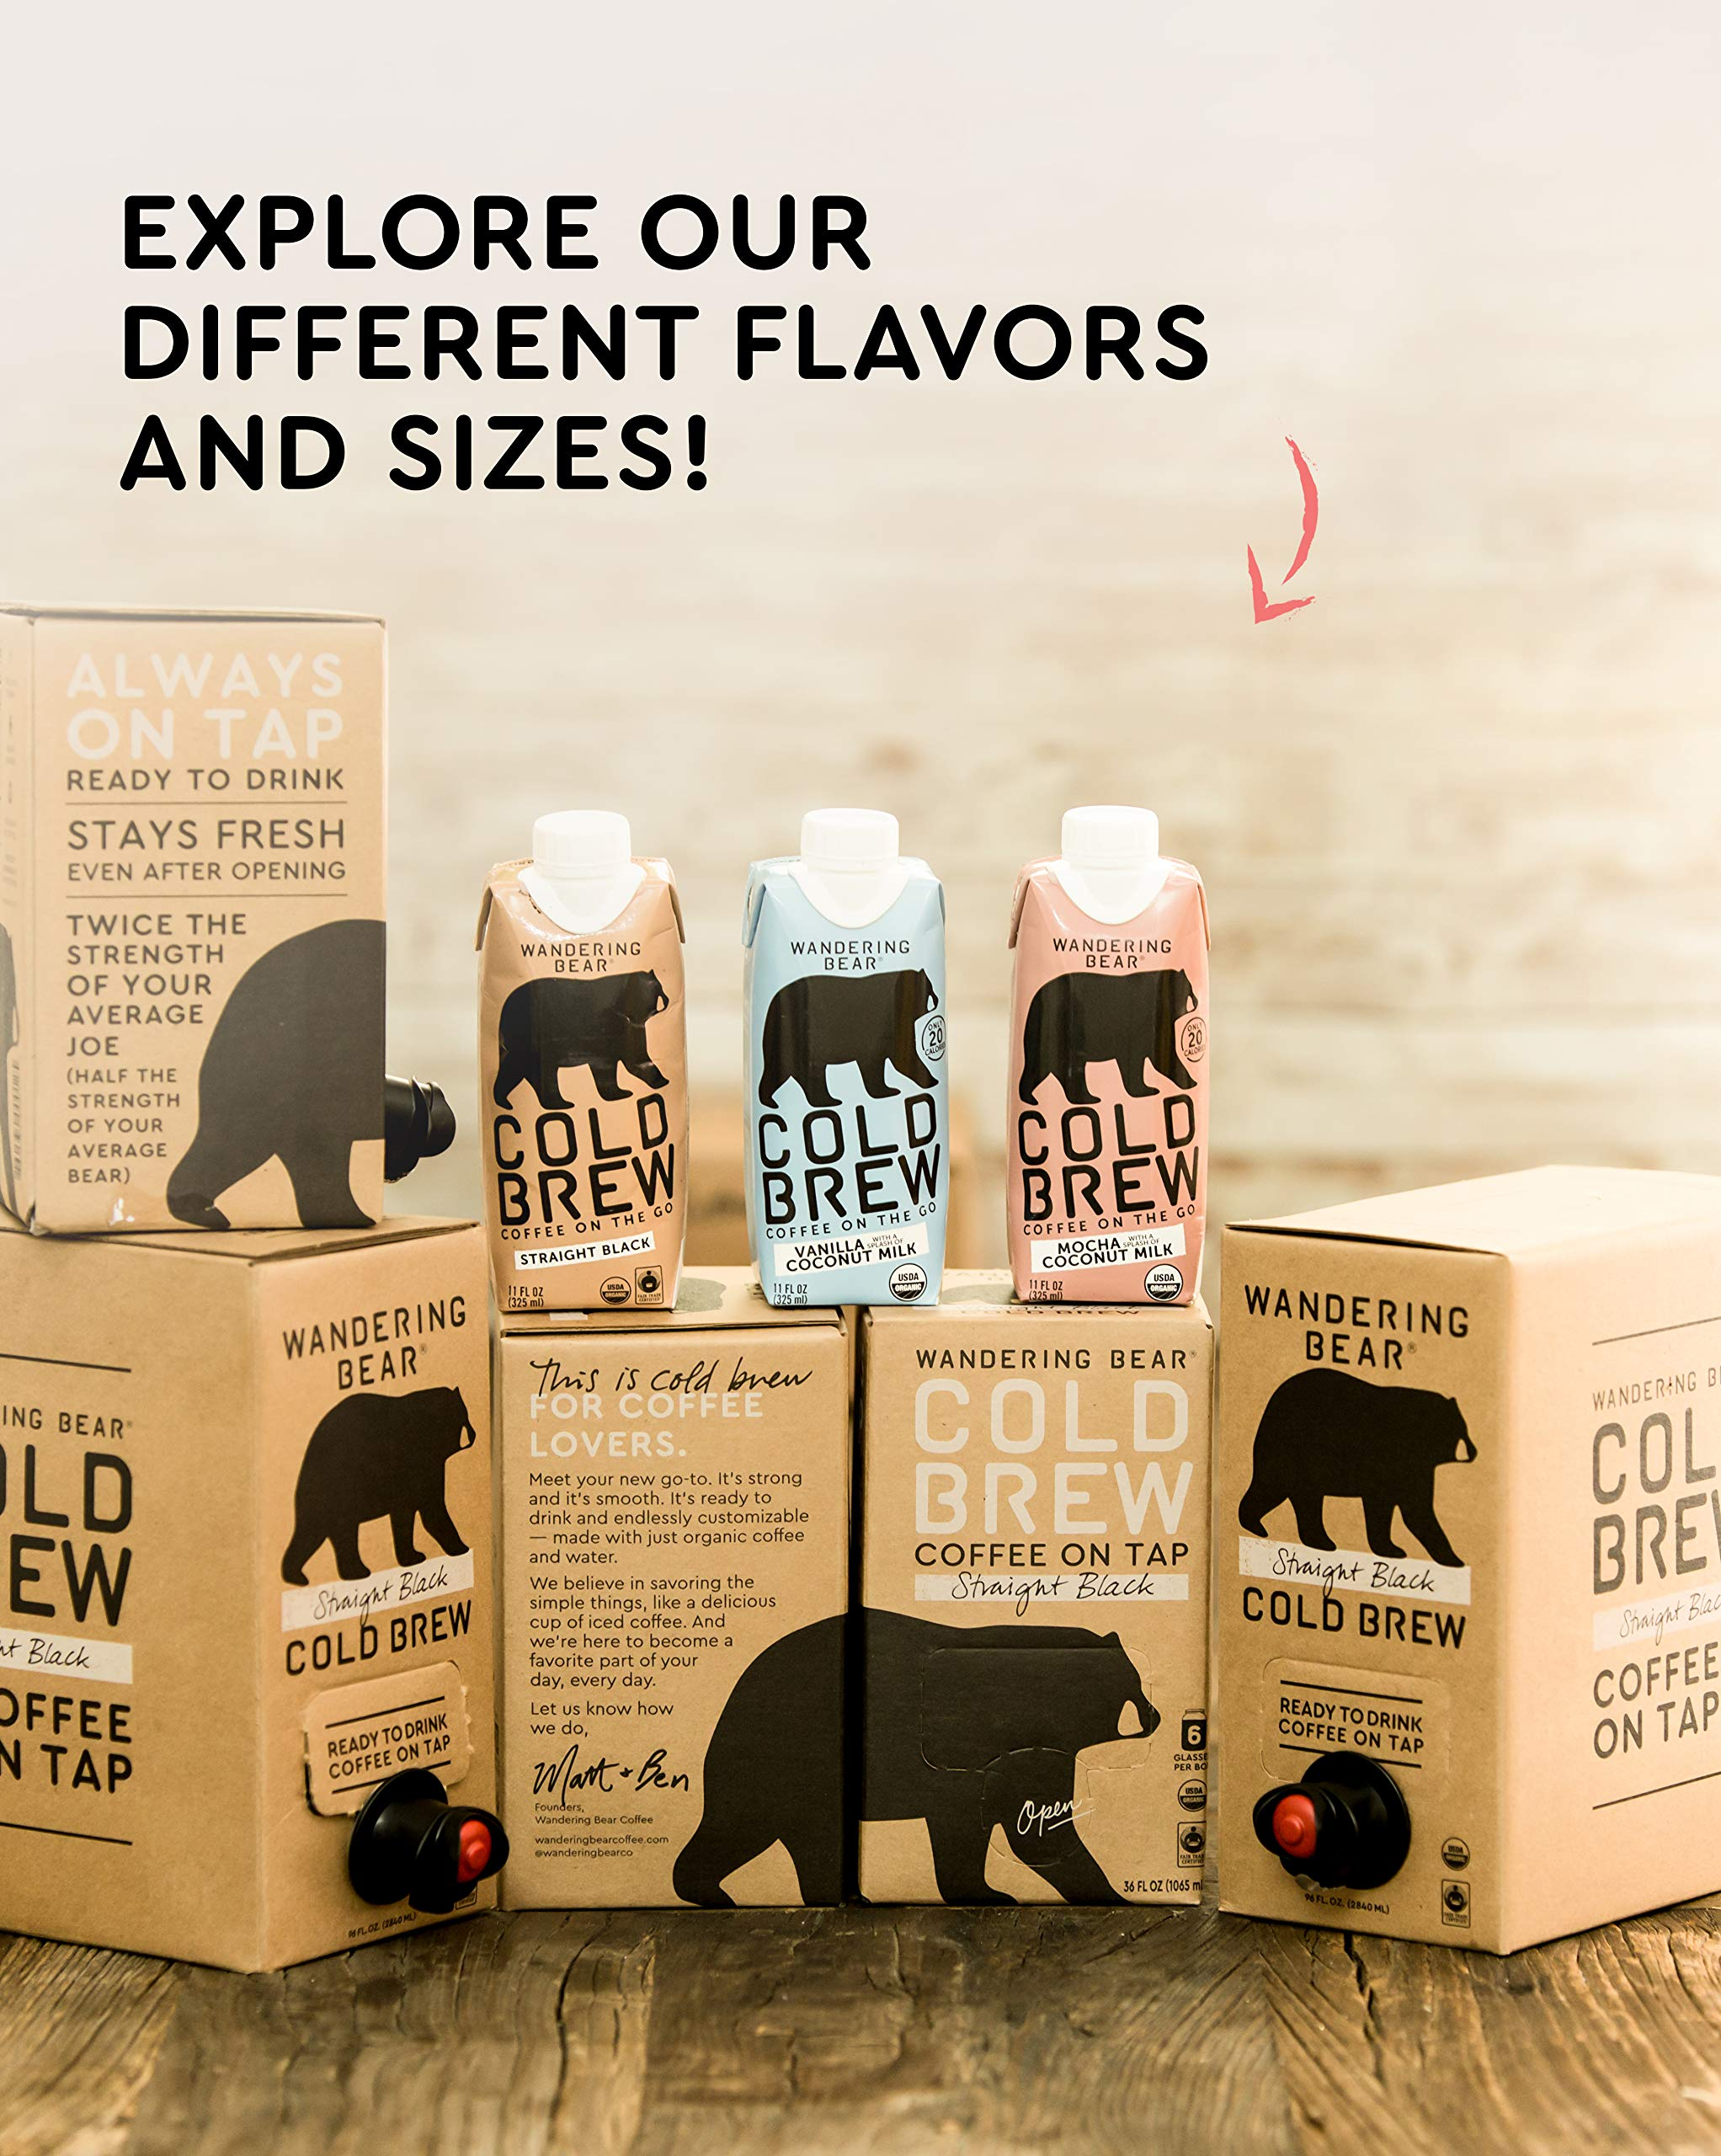 Wandering Bear Organic Cold Brew Coffee On-the-Go 11 oz Carton, Mocha With Splash of Coconut Milk, No Sugar, Ready to Drink, Not a Concentrate (Pack of 12) by Wandering Bear (Image #9)